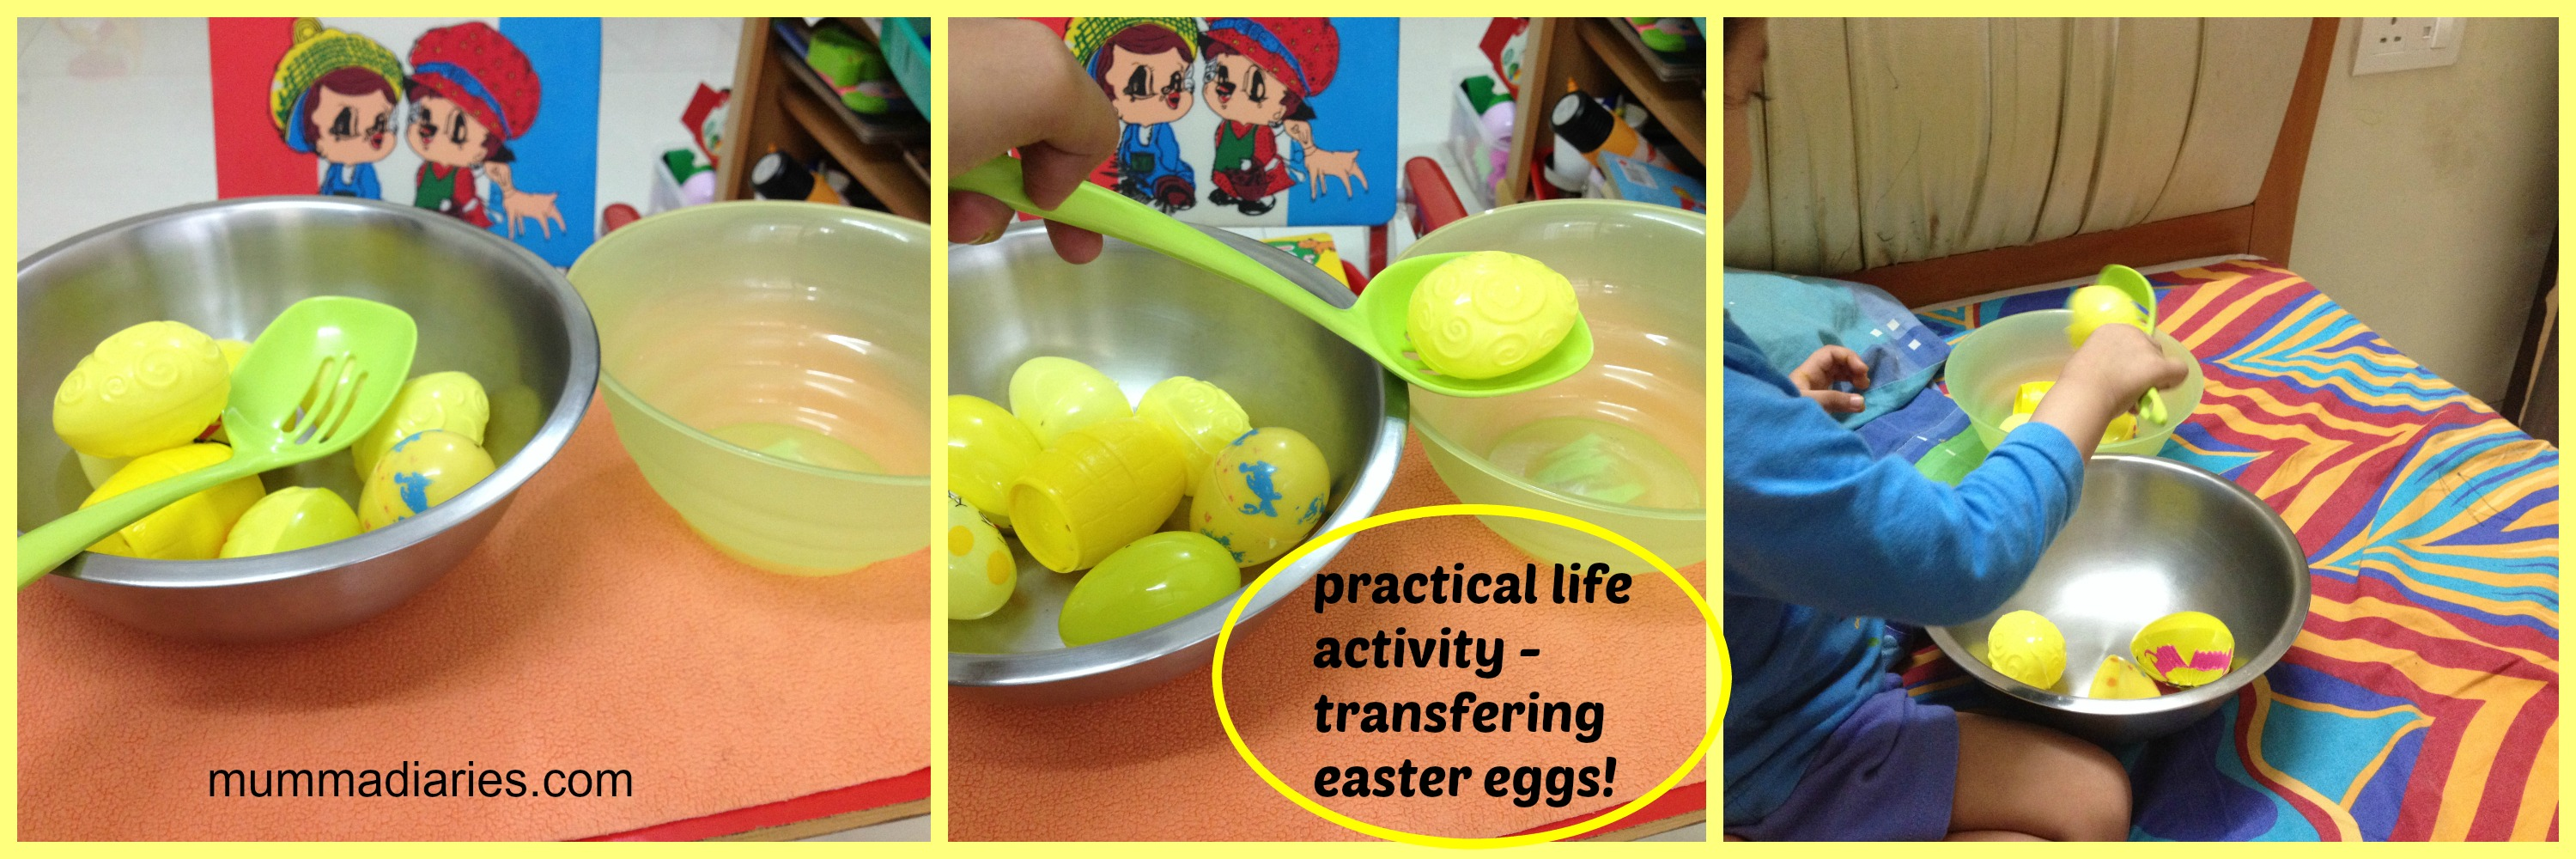 yellow themed toddler activities mumma diaries - Colour Activities For Toddlers